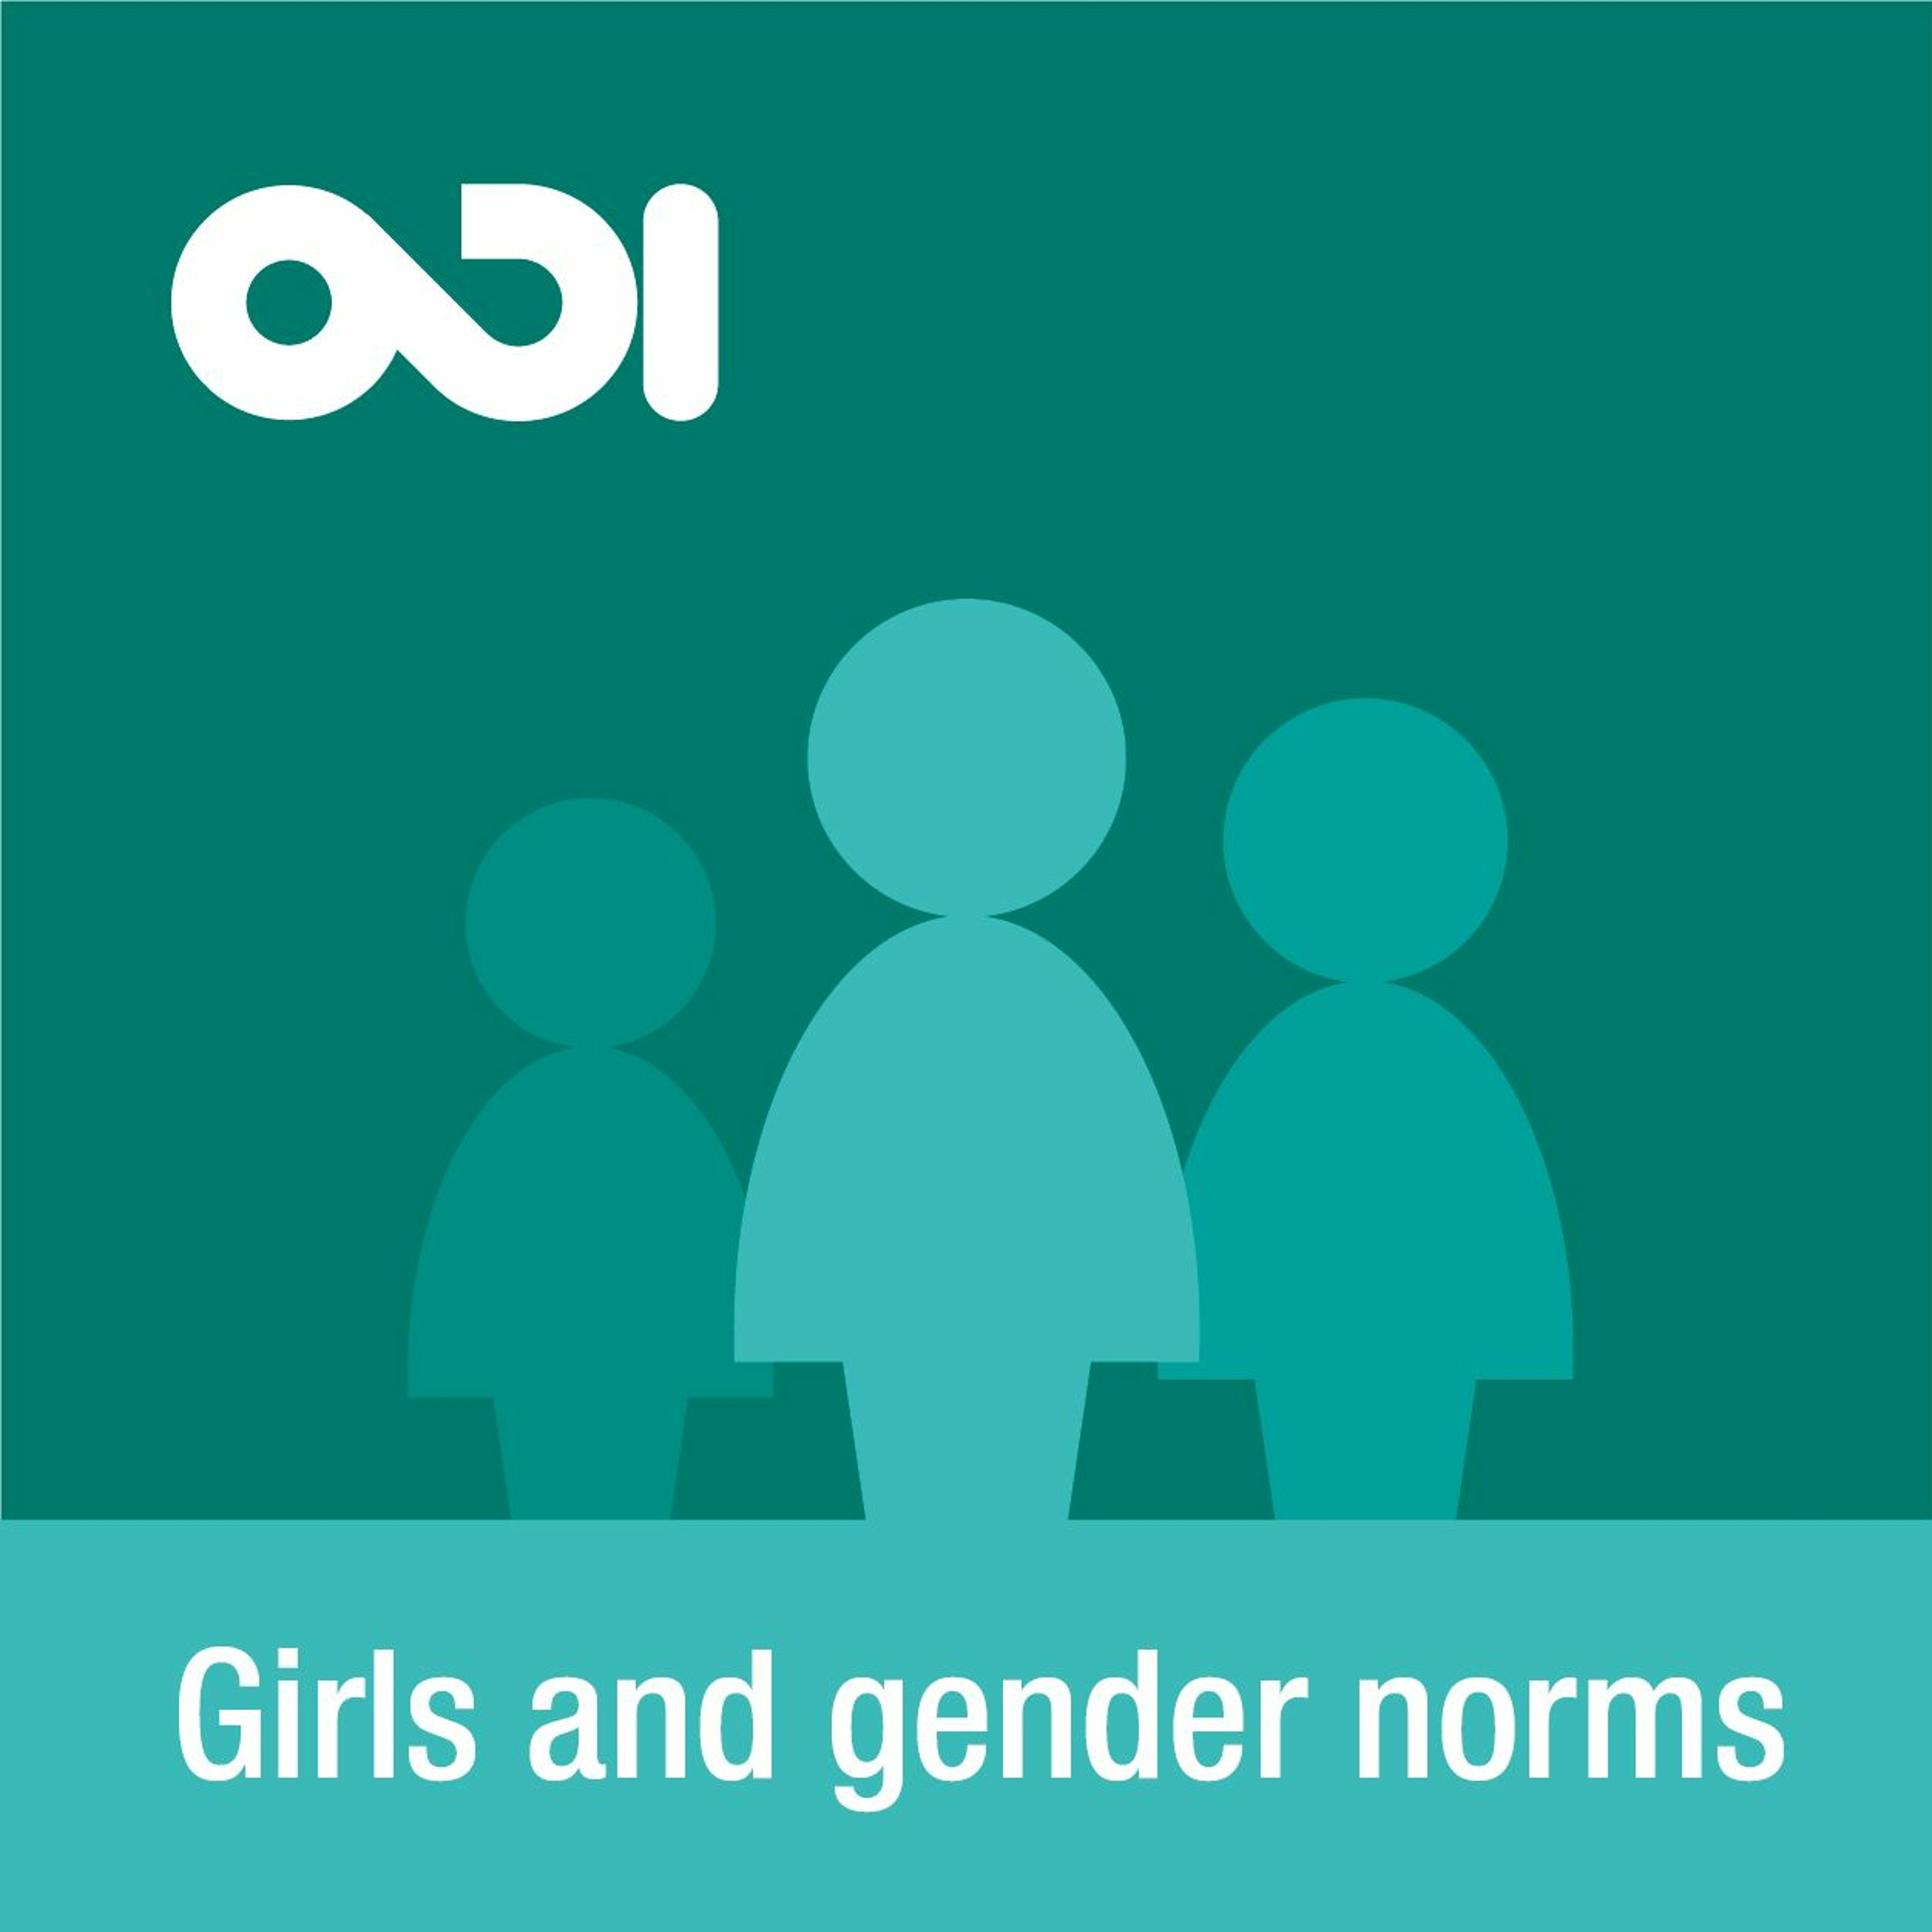 Episode 1: What are gender norms, and how are they changing?